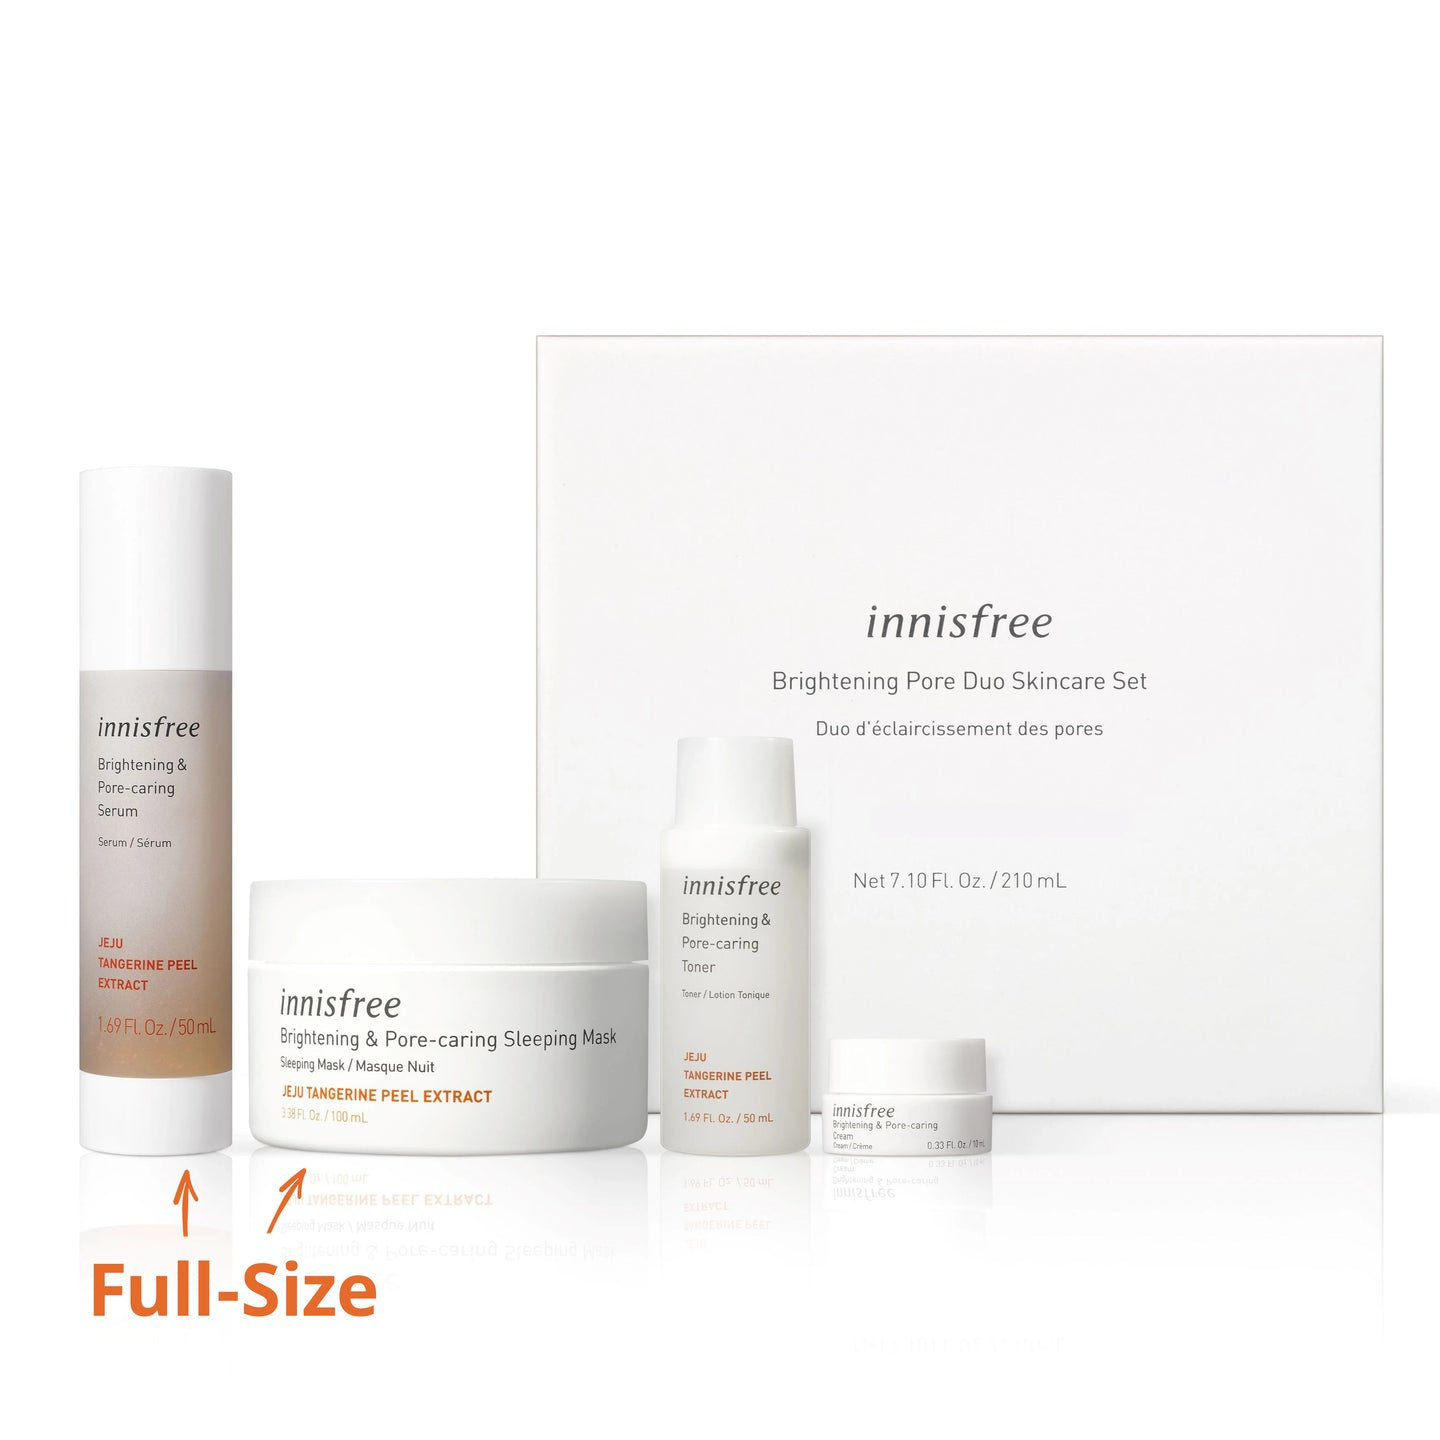 Brightening & pore-caring skincare set